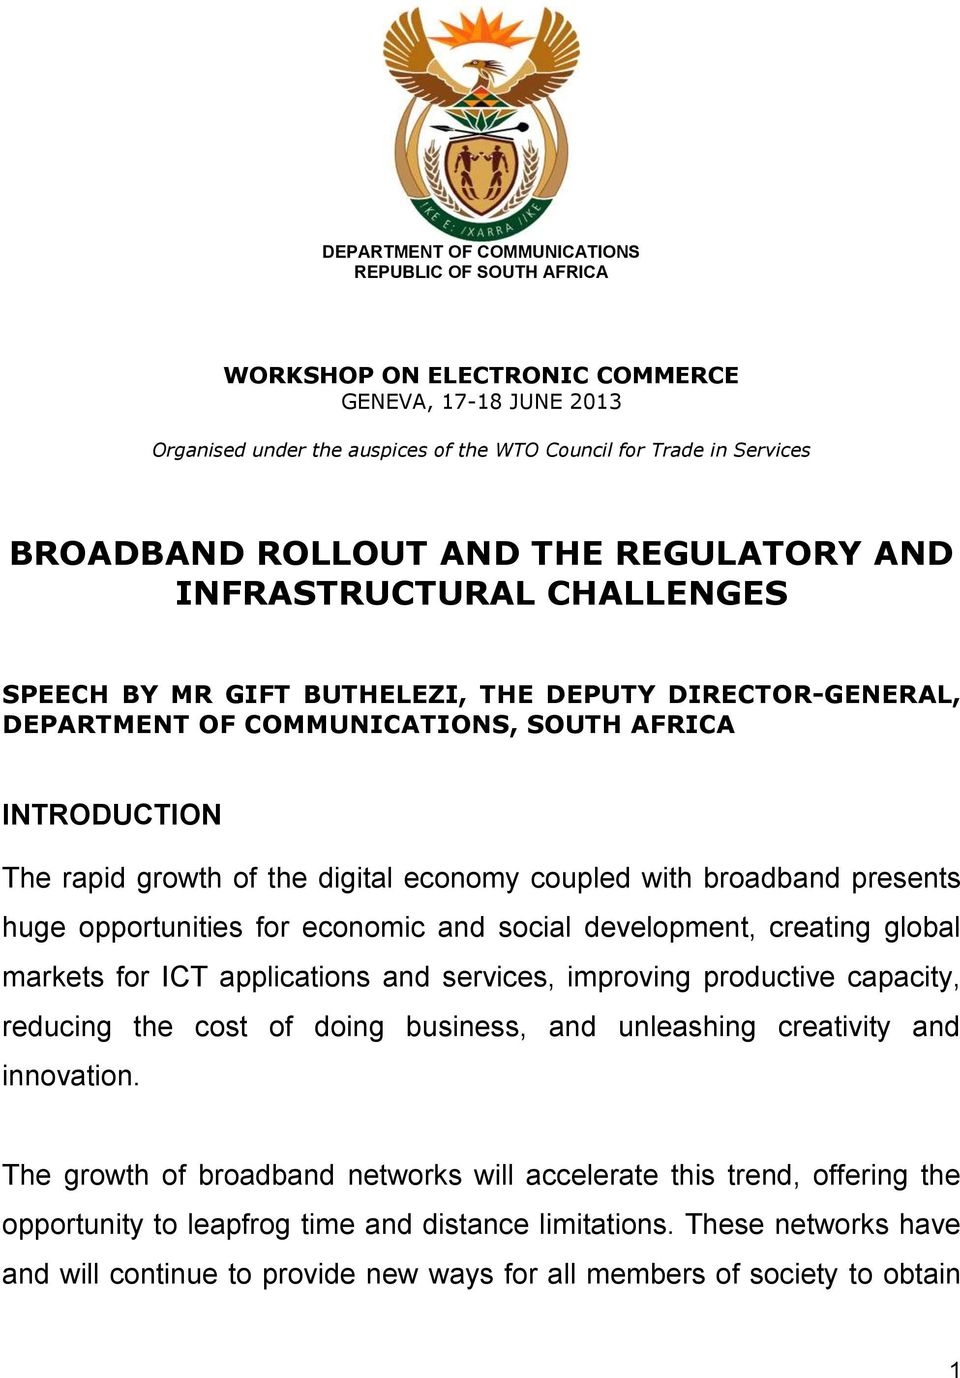 economy coupled with broadband presents huge opportunities for economic and social development, creating global markets for ICT applications and services, improving productive capacity, reducing the